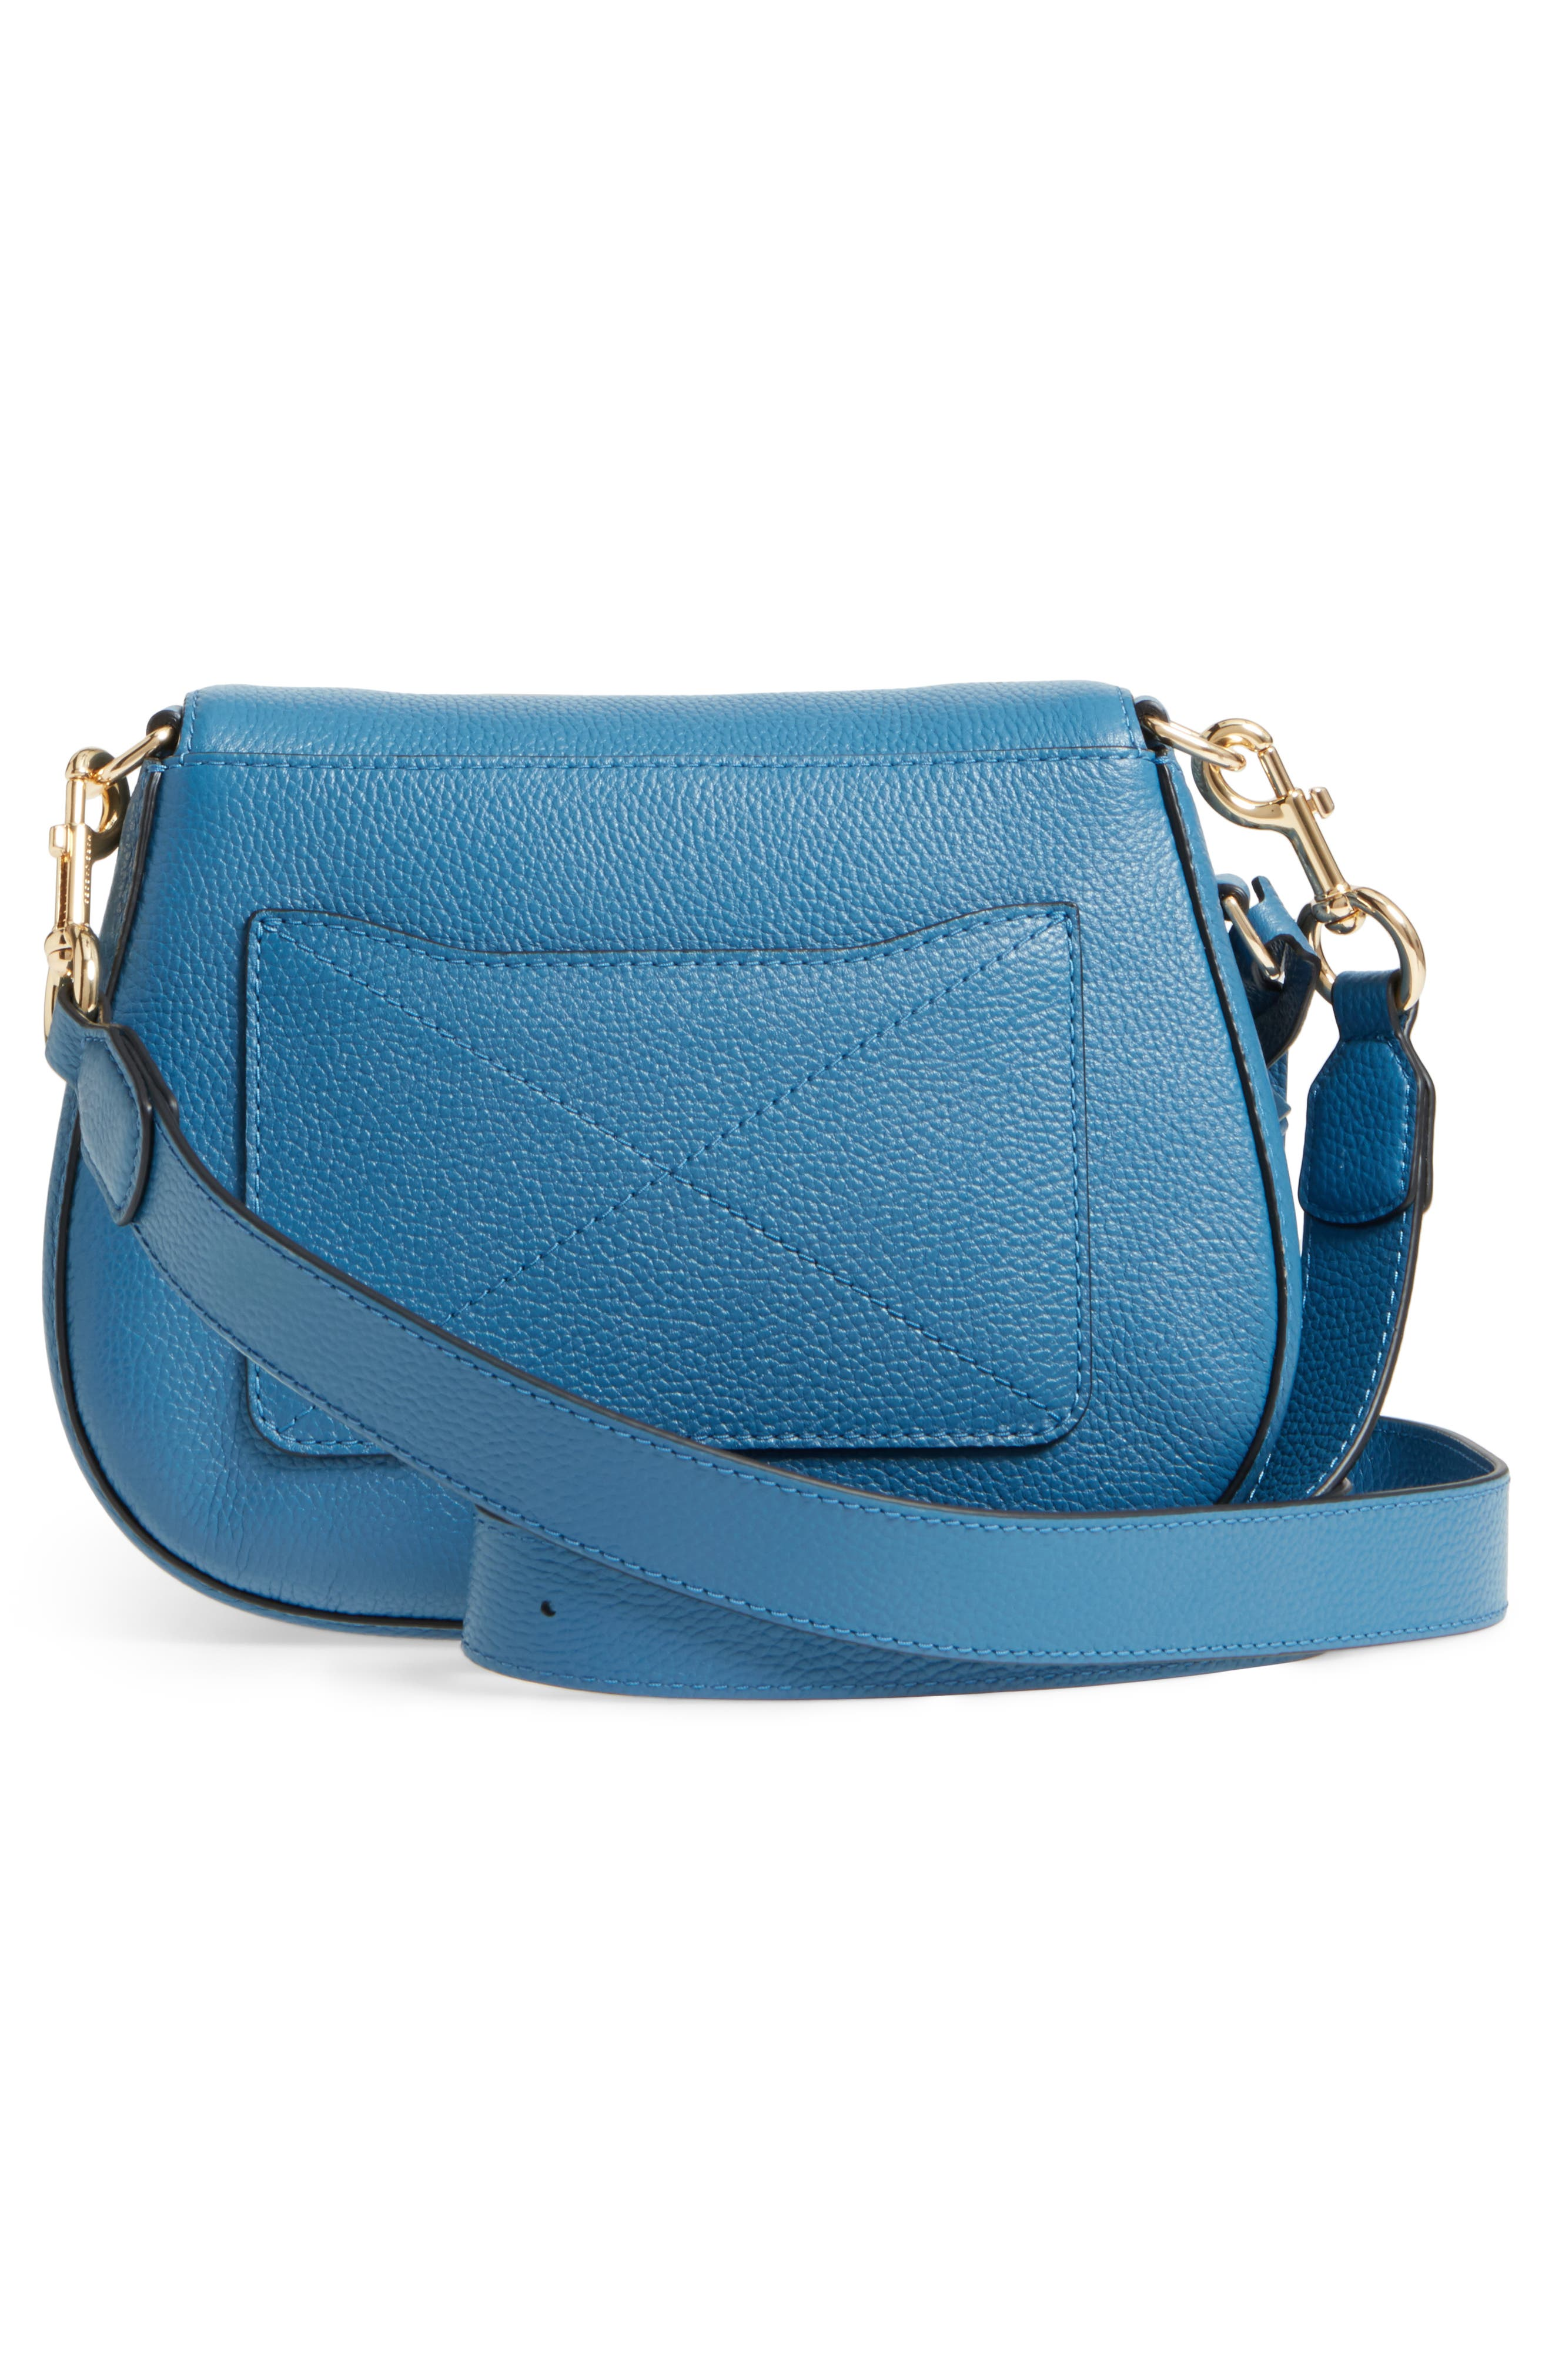 Small Recruit Nomad Pebbled Leather Crossbody Bag,                             Alternate thumbnail 29, color,